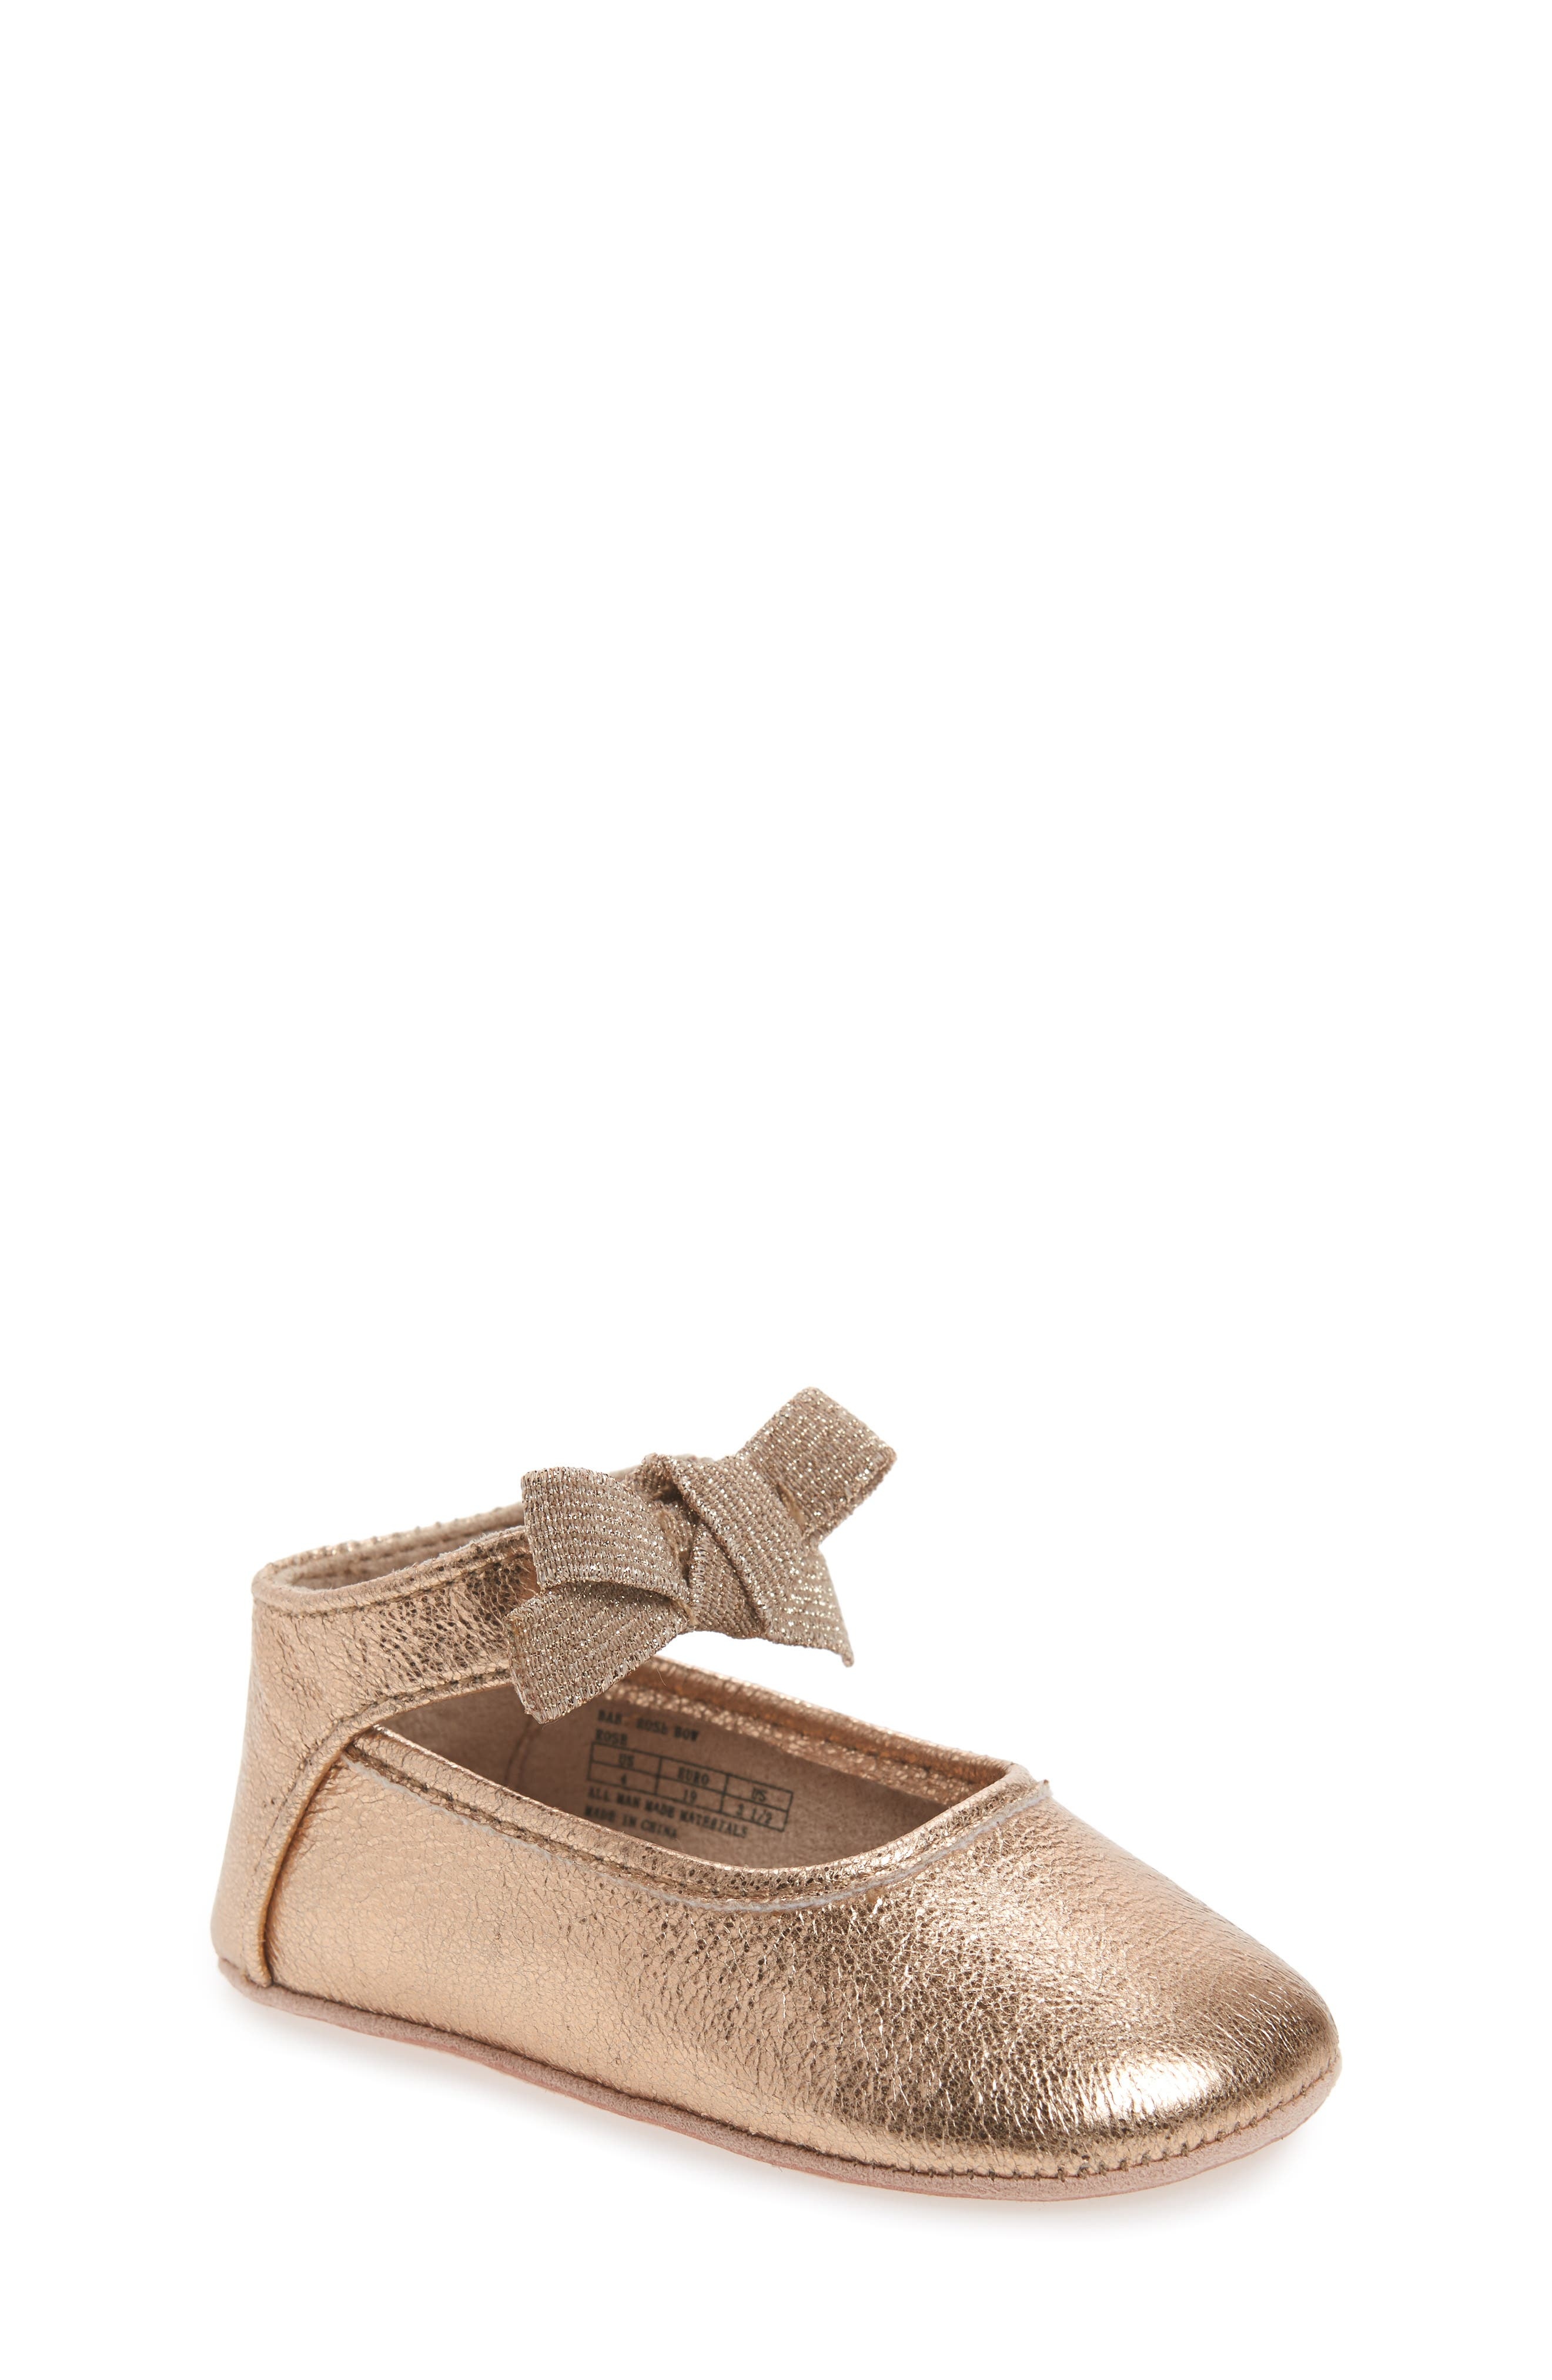 KENNETH COLE NEW YORK, Rose Bow Metallic Ballet Flat, Main thumbnail 1, color, ROSE